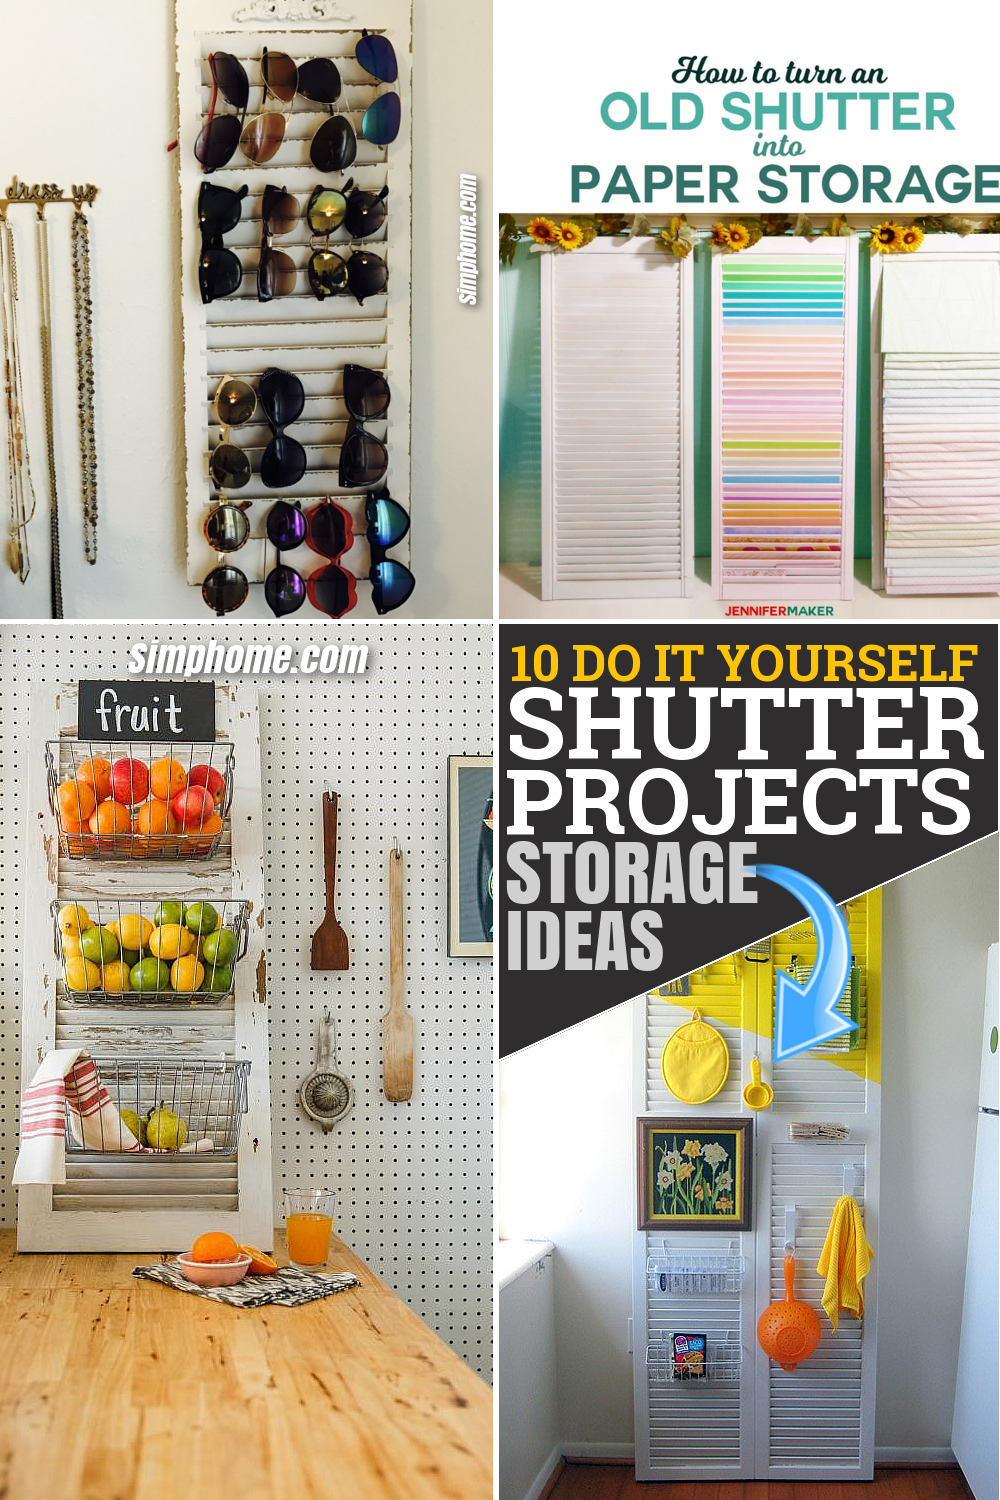 10 DIY Shutter Projects by SIMPHOME.COM That Will Level Up Your Storage Solutions Game Pinterest Featured Image